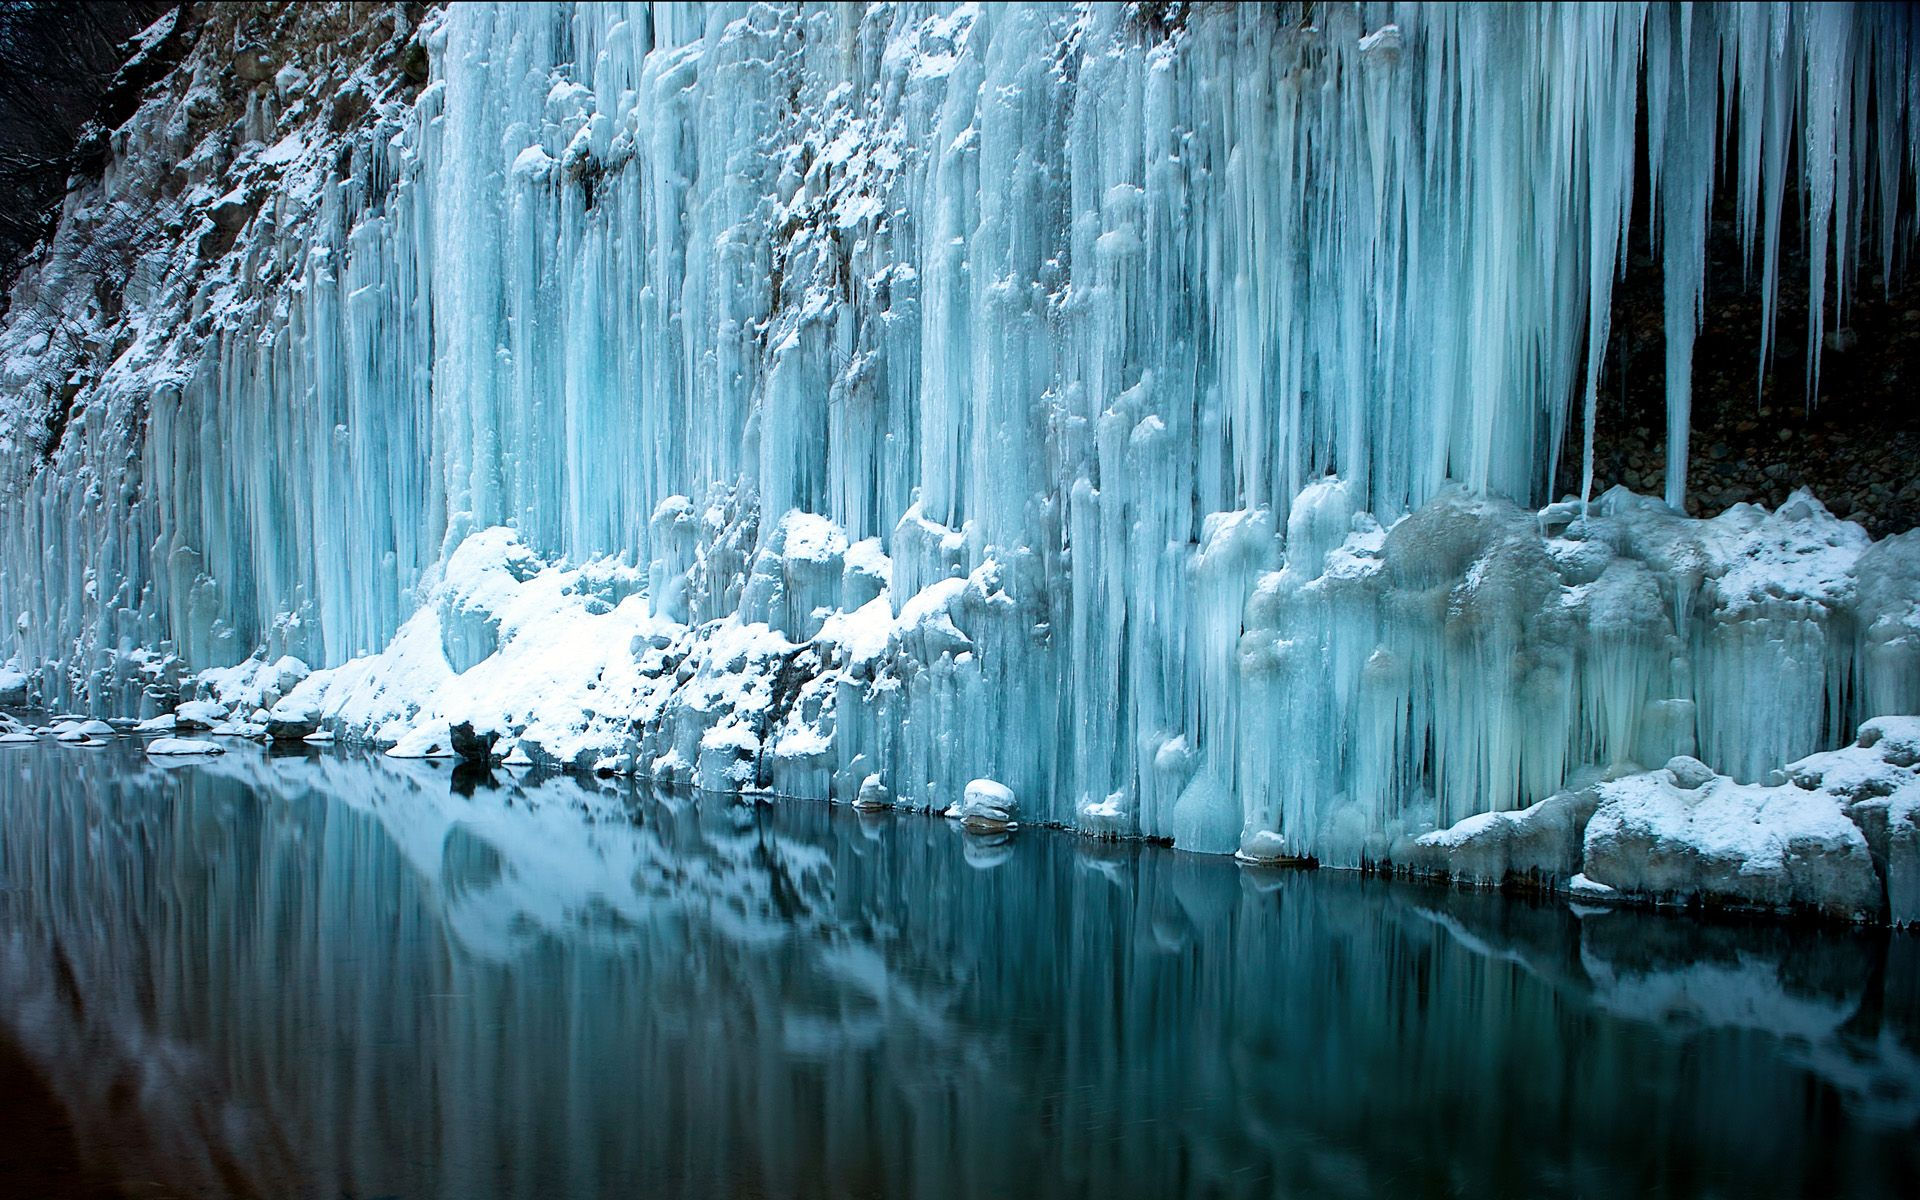 20 Incredible Photos of Frozen Waterfalls   Top Dreamer 1920x1200